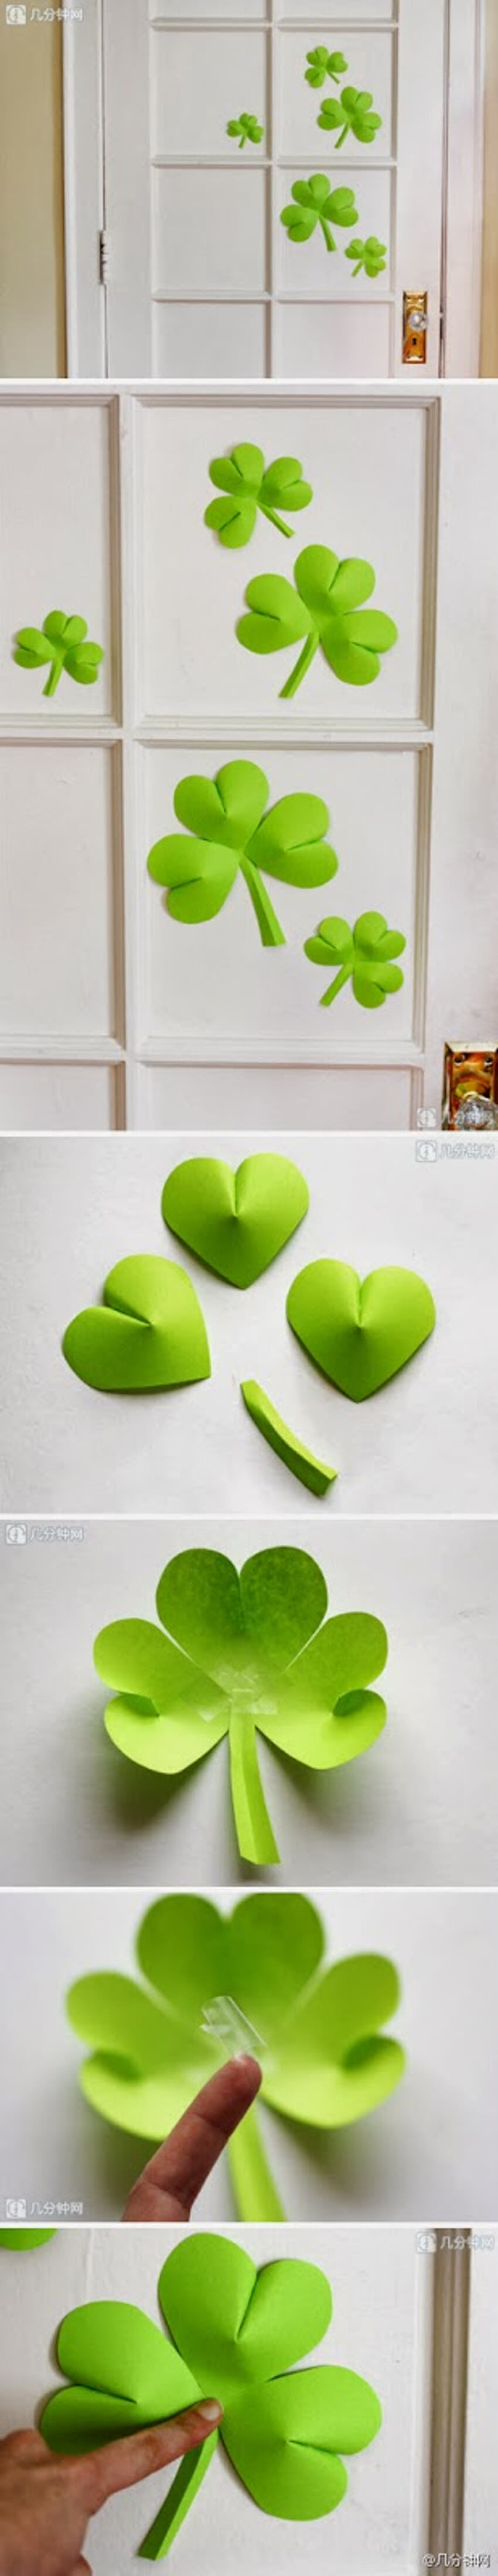 Easy paper clover step by step.